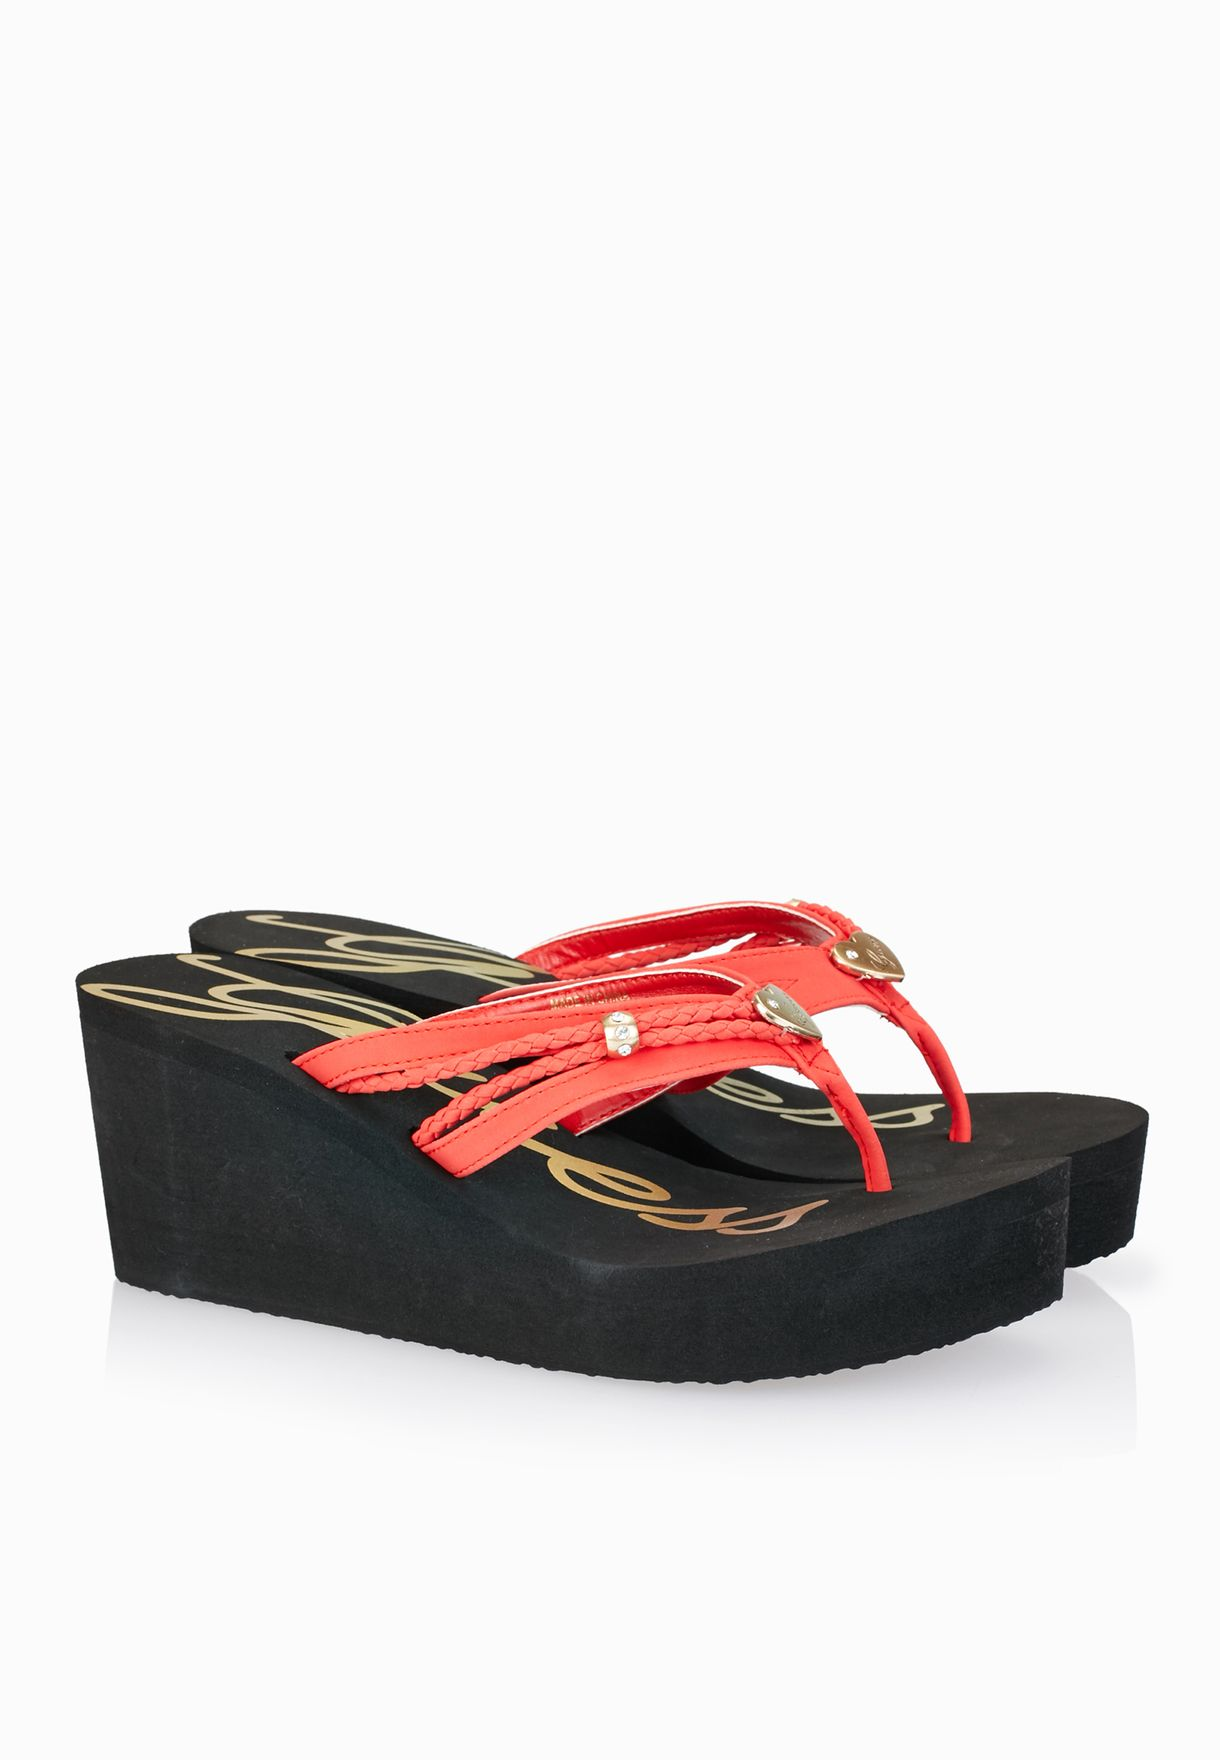 57819e5b4 Shop Guess red Jewelled Thong Wedge Sandals gwSEABY-B for Women in ...